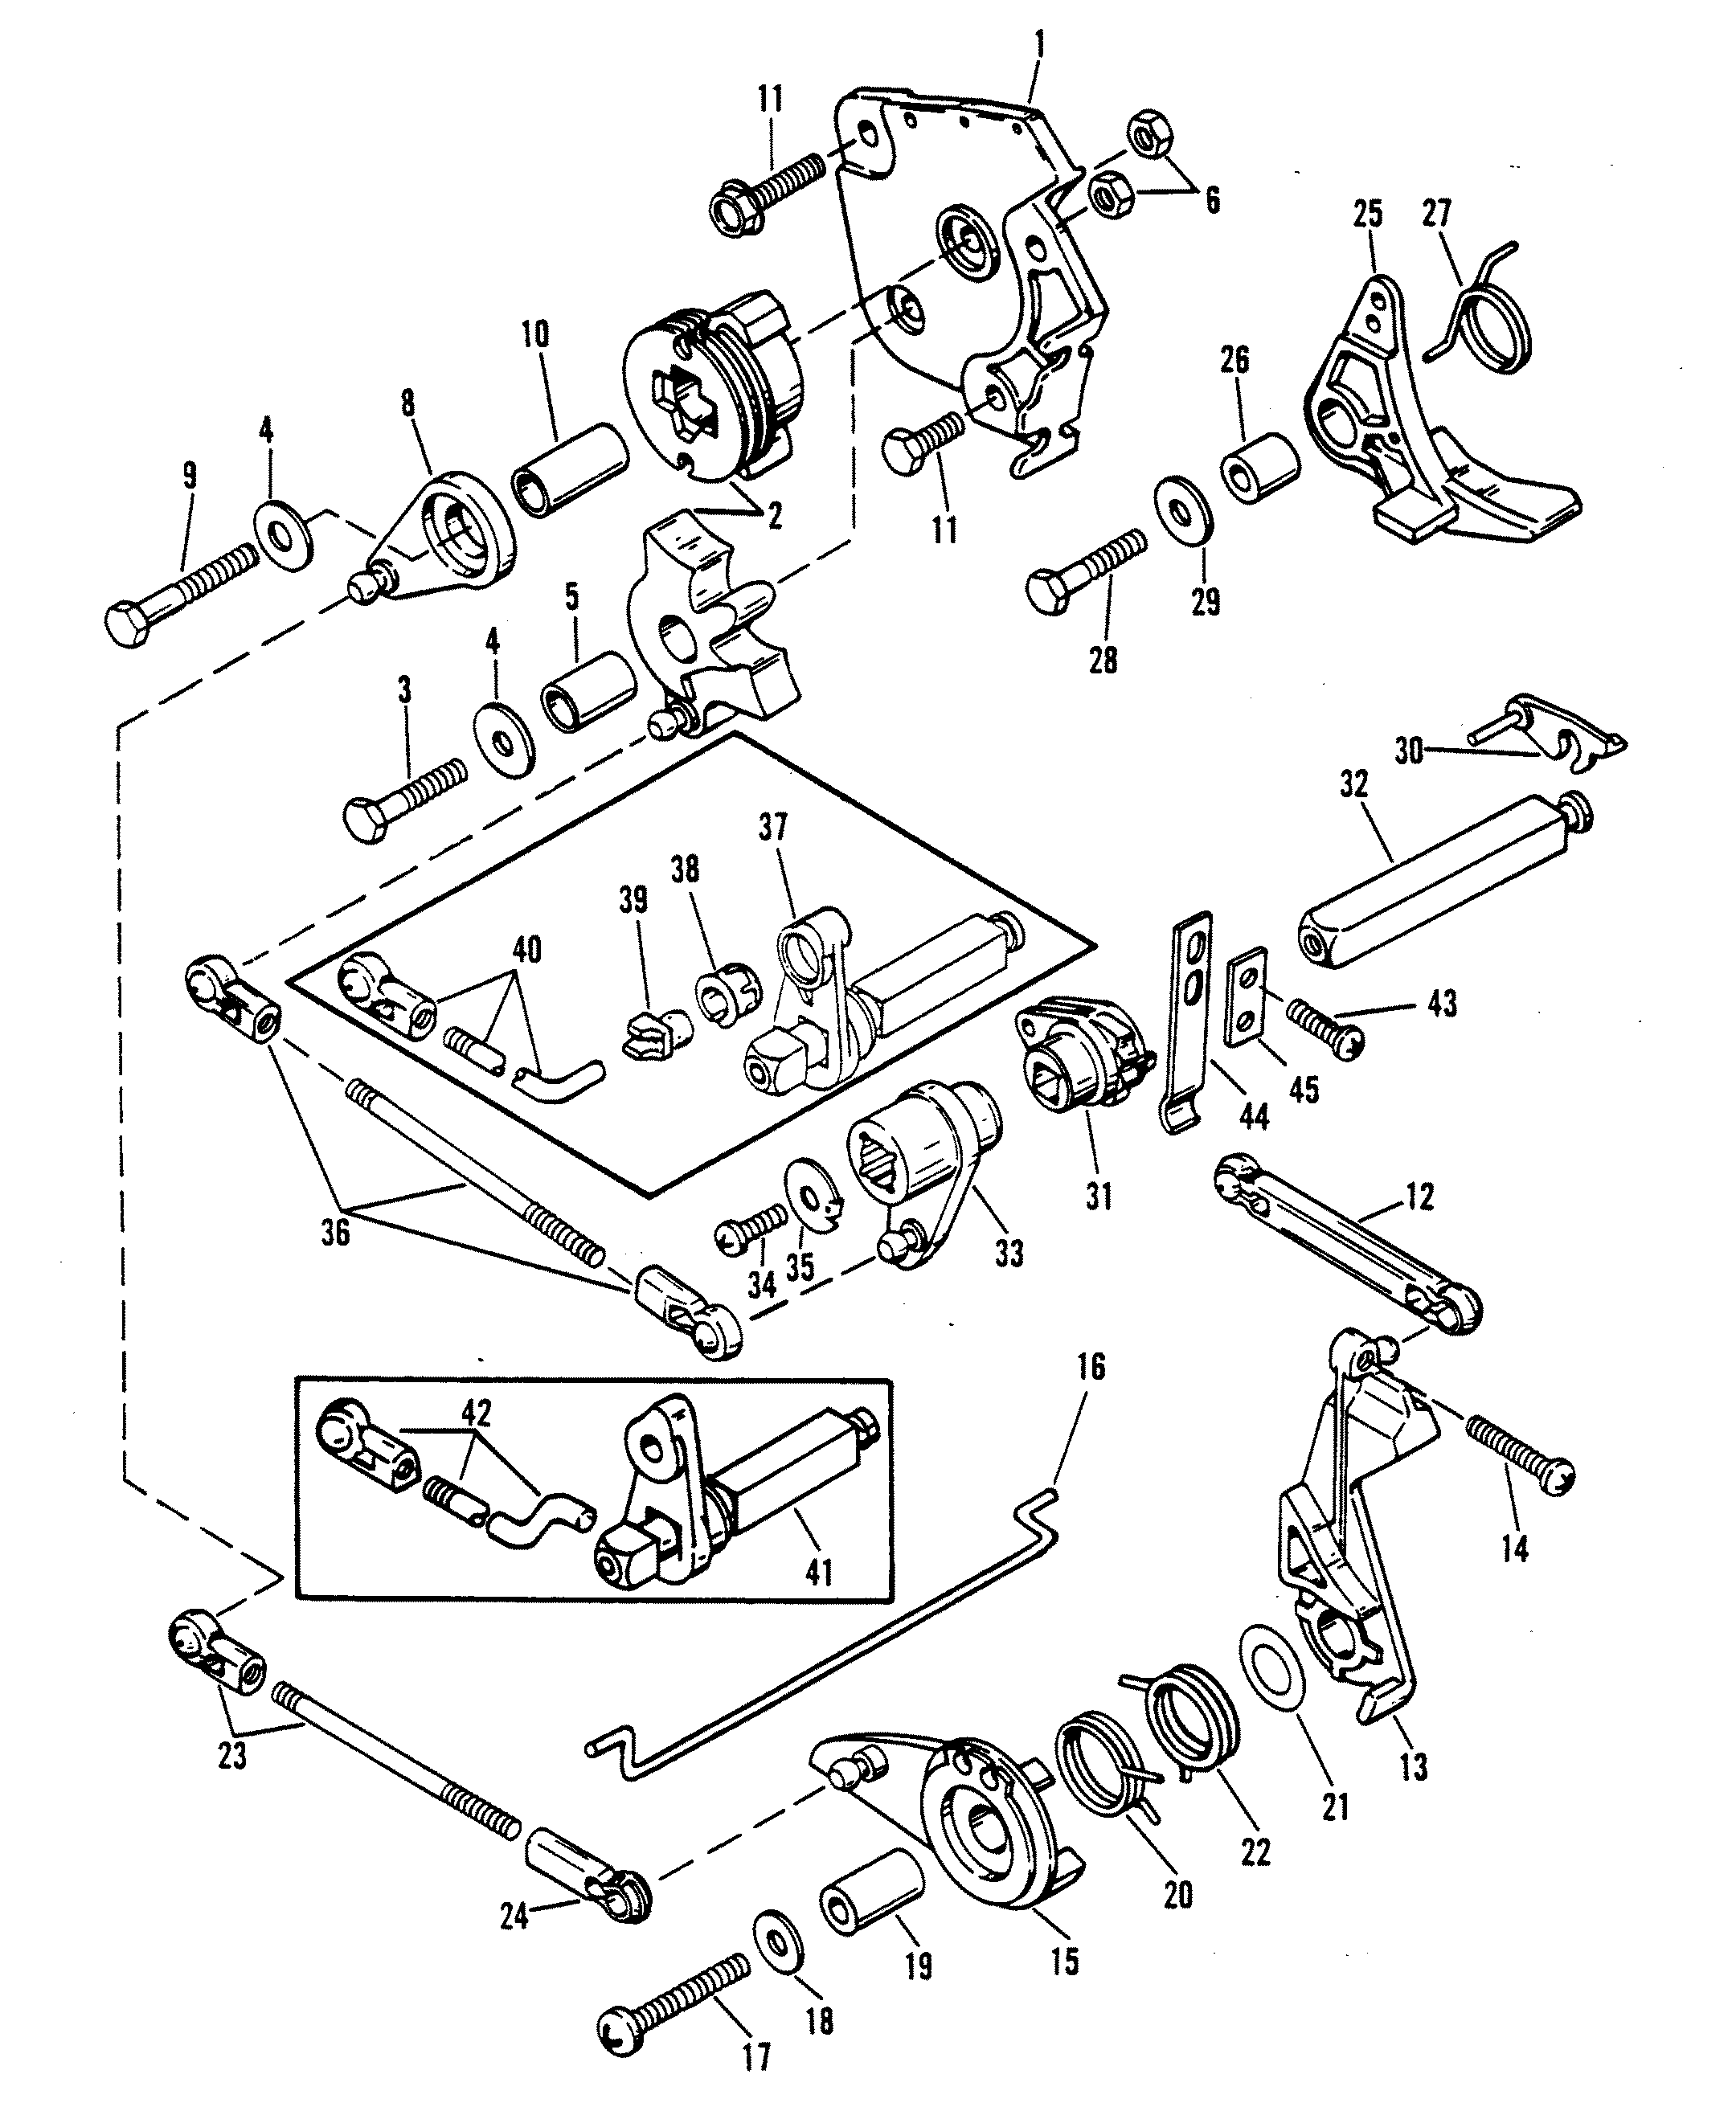 2006 Mercury Mariner Engine Diagram. Mercury. Wiring